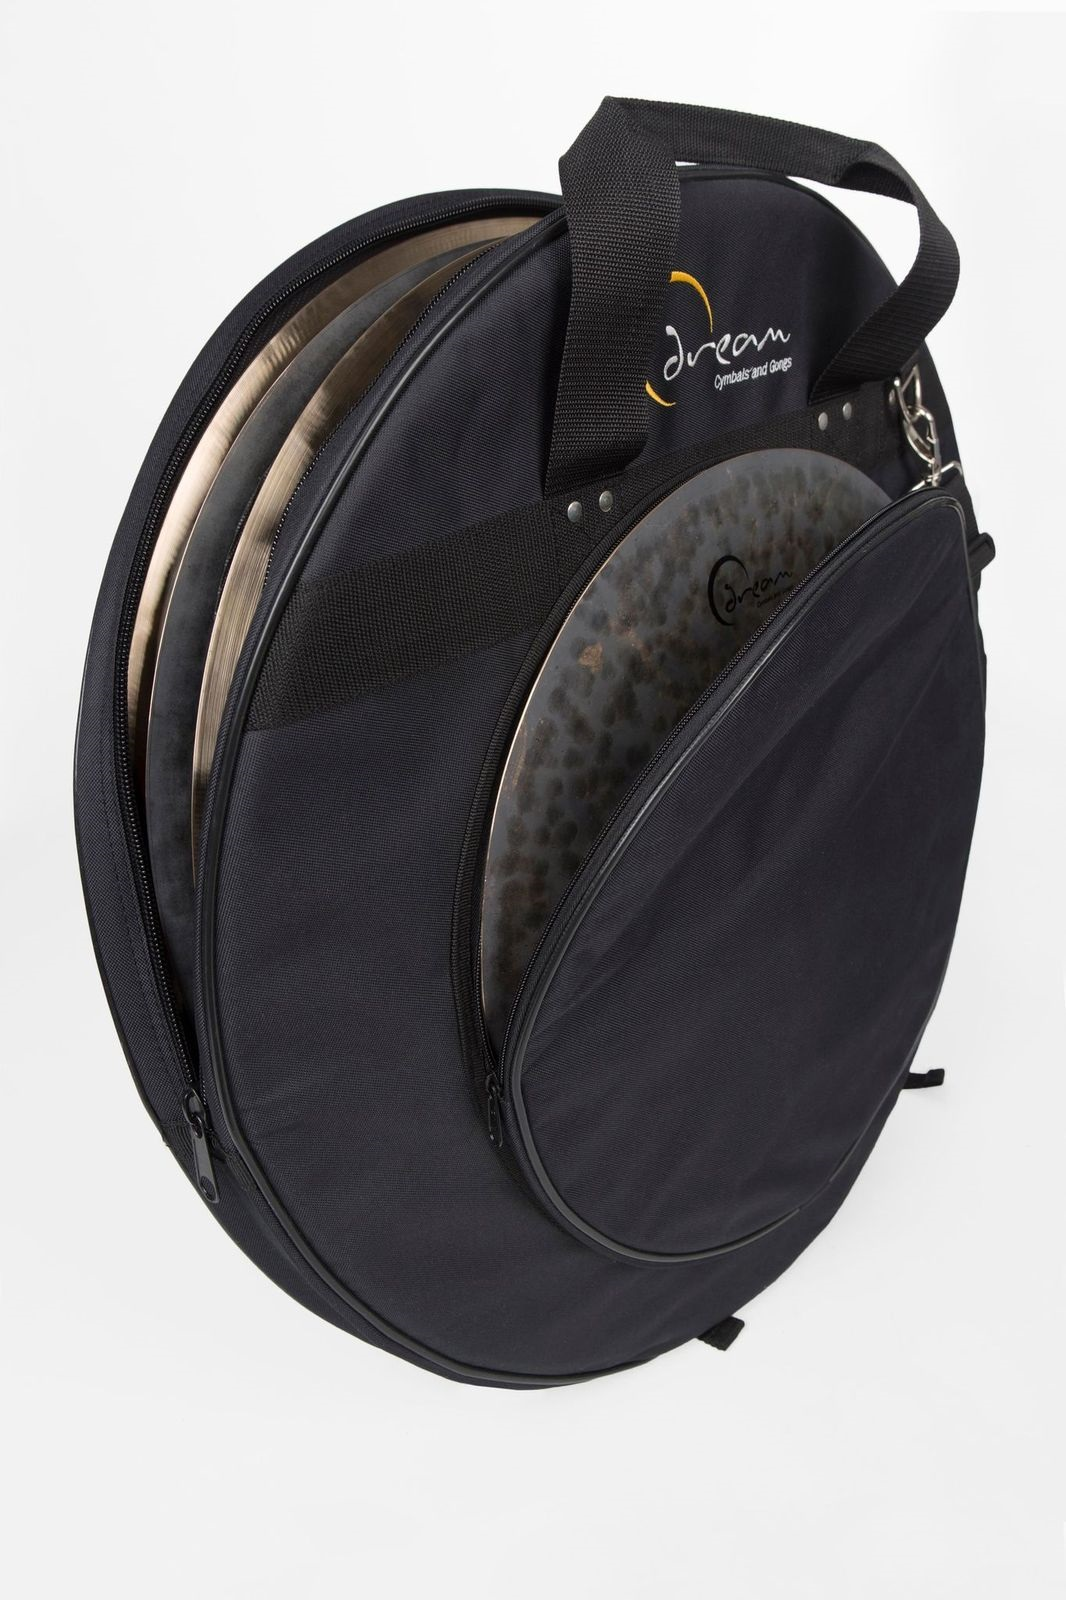 """Dream 22"""" Deluxe cymbal bag w/dividers"""